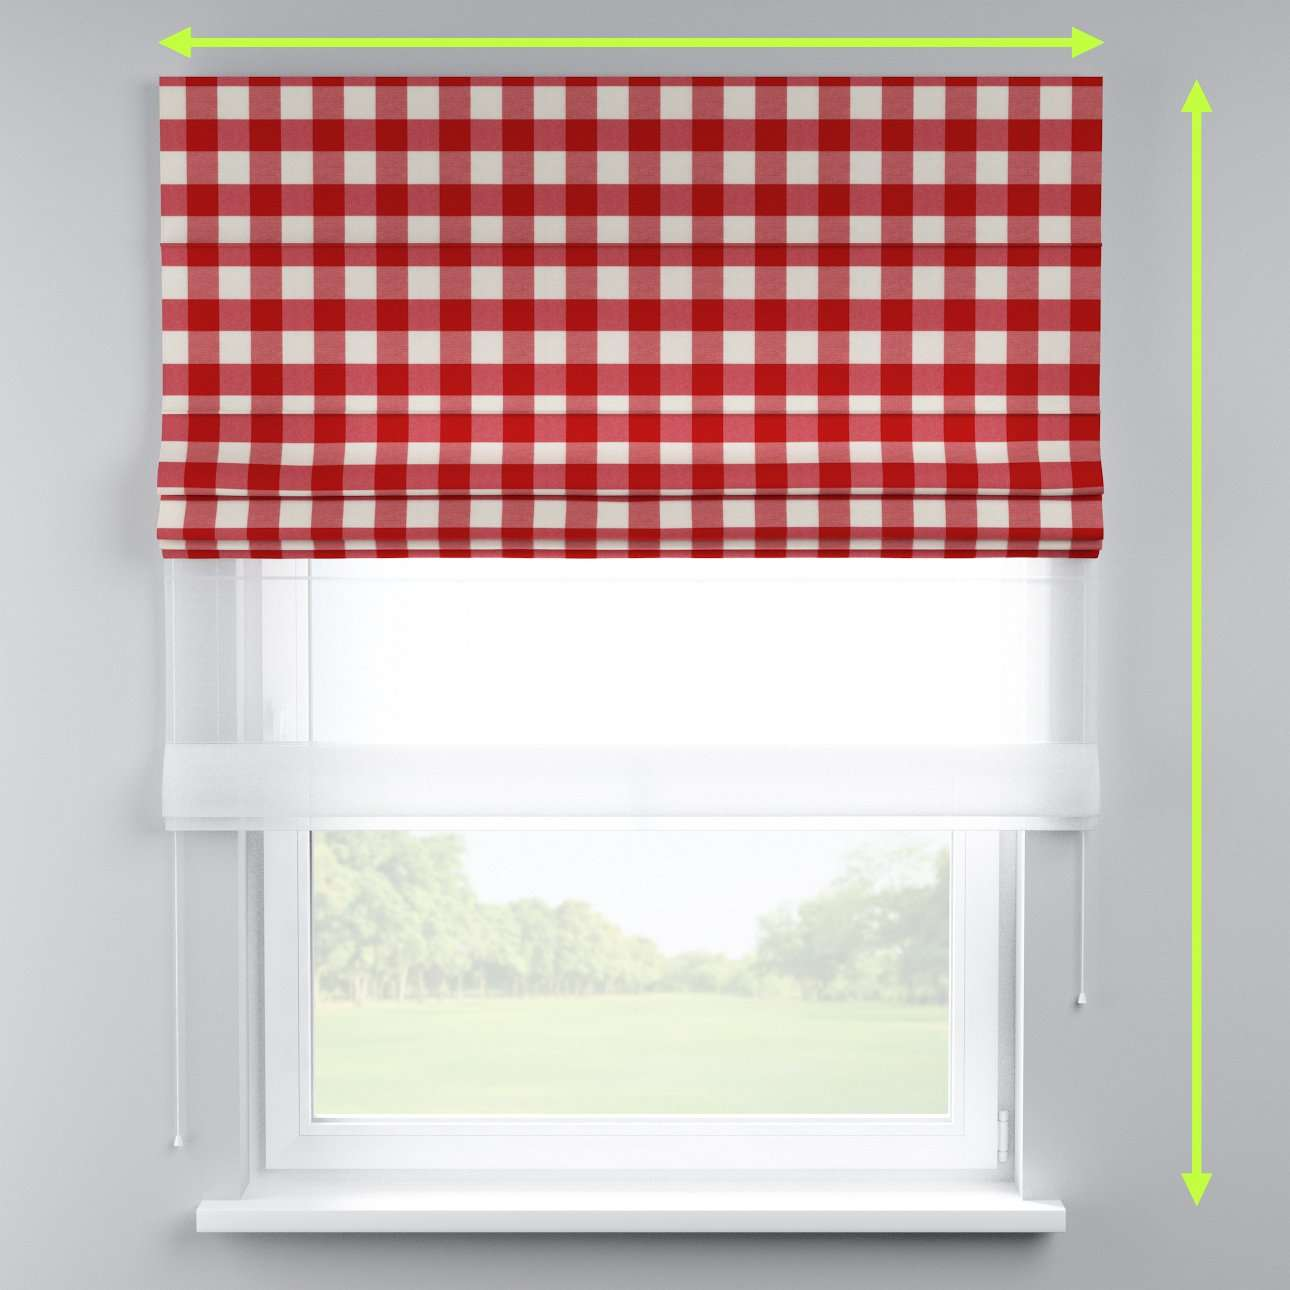 Voile and fabric roman blind (DUO II) in collection Quadro, fabric: 136-18